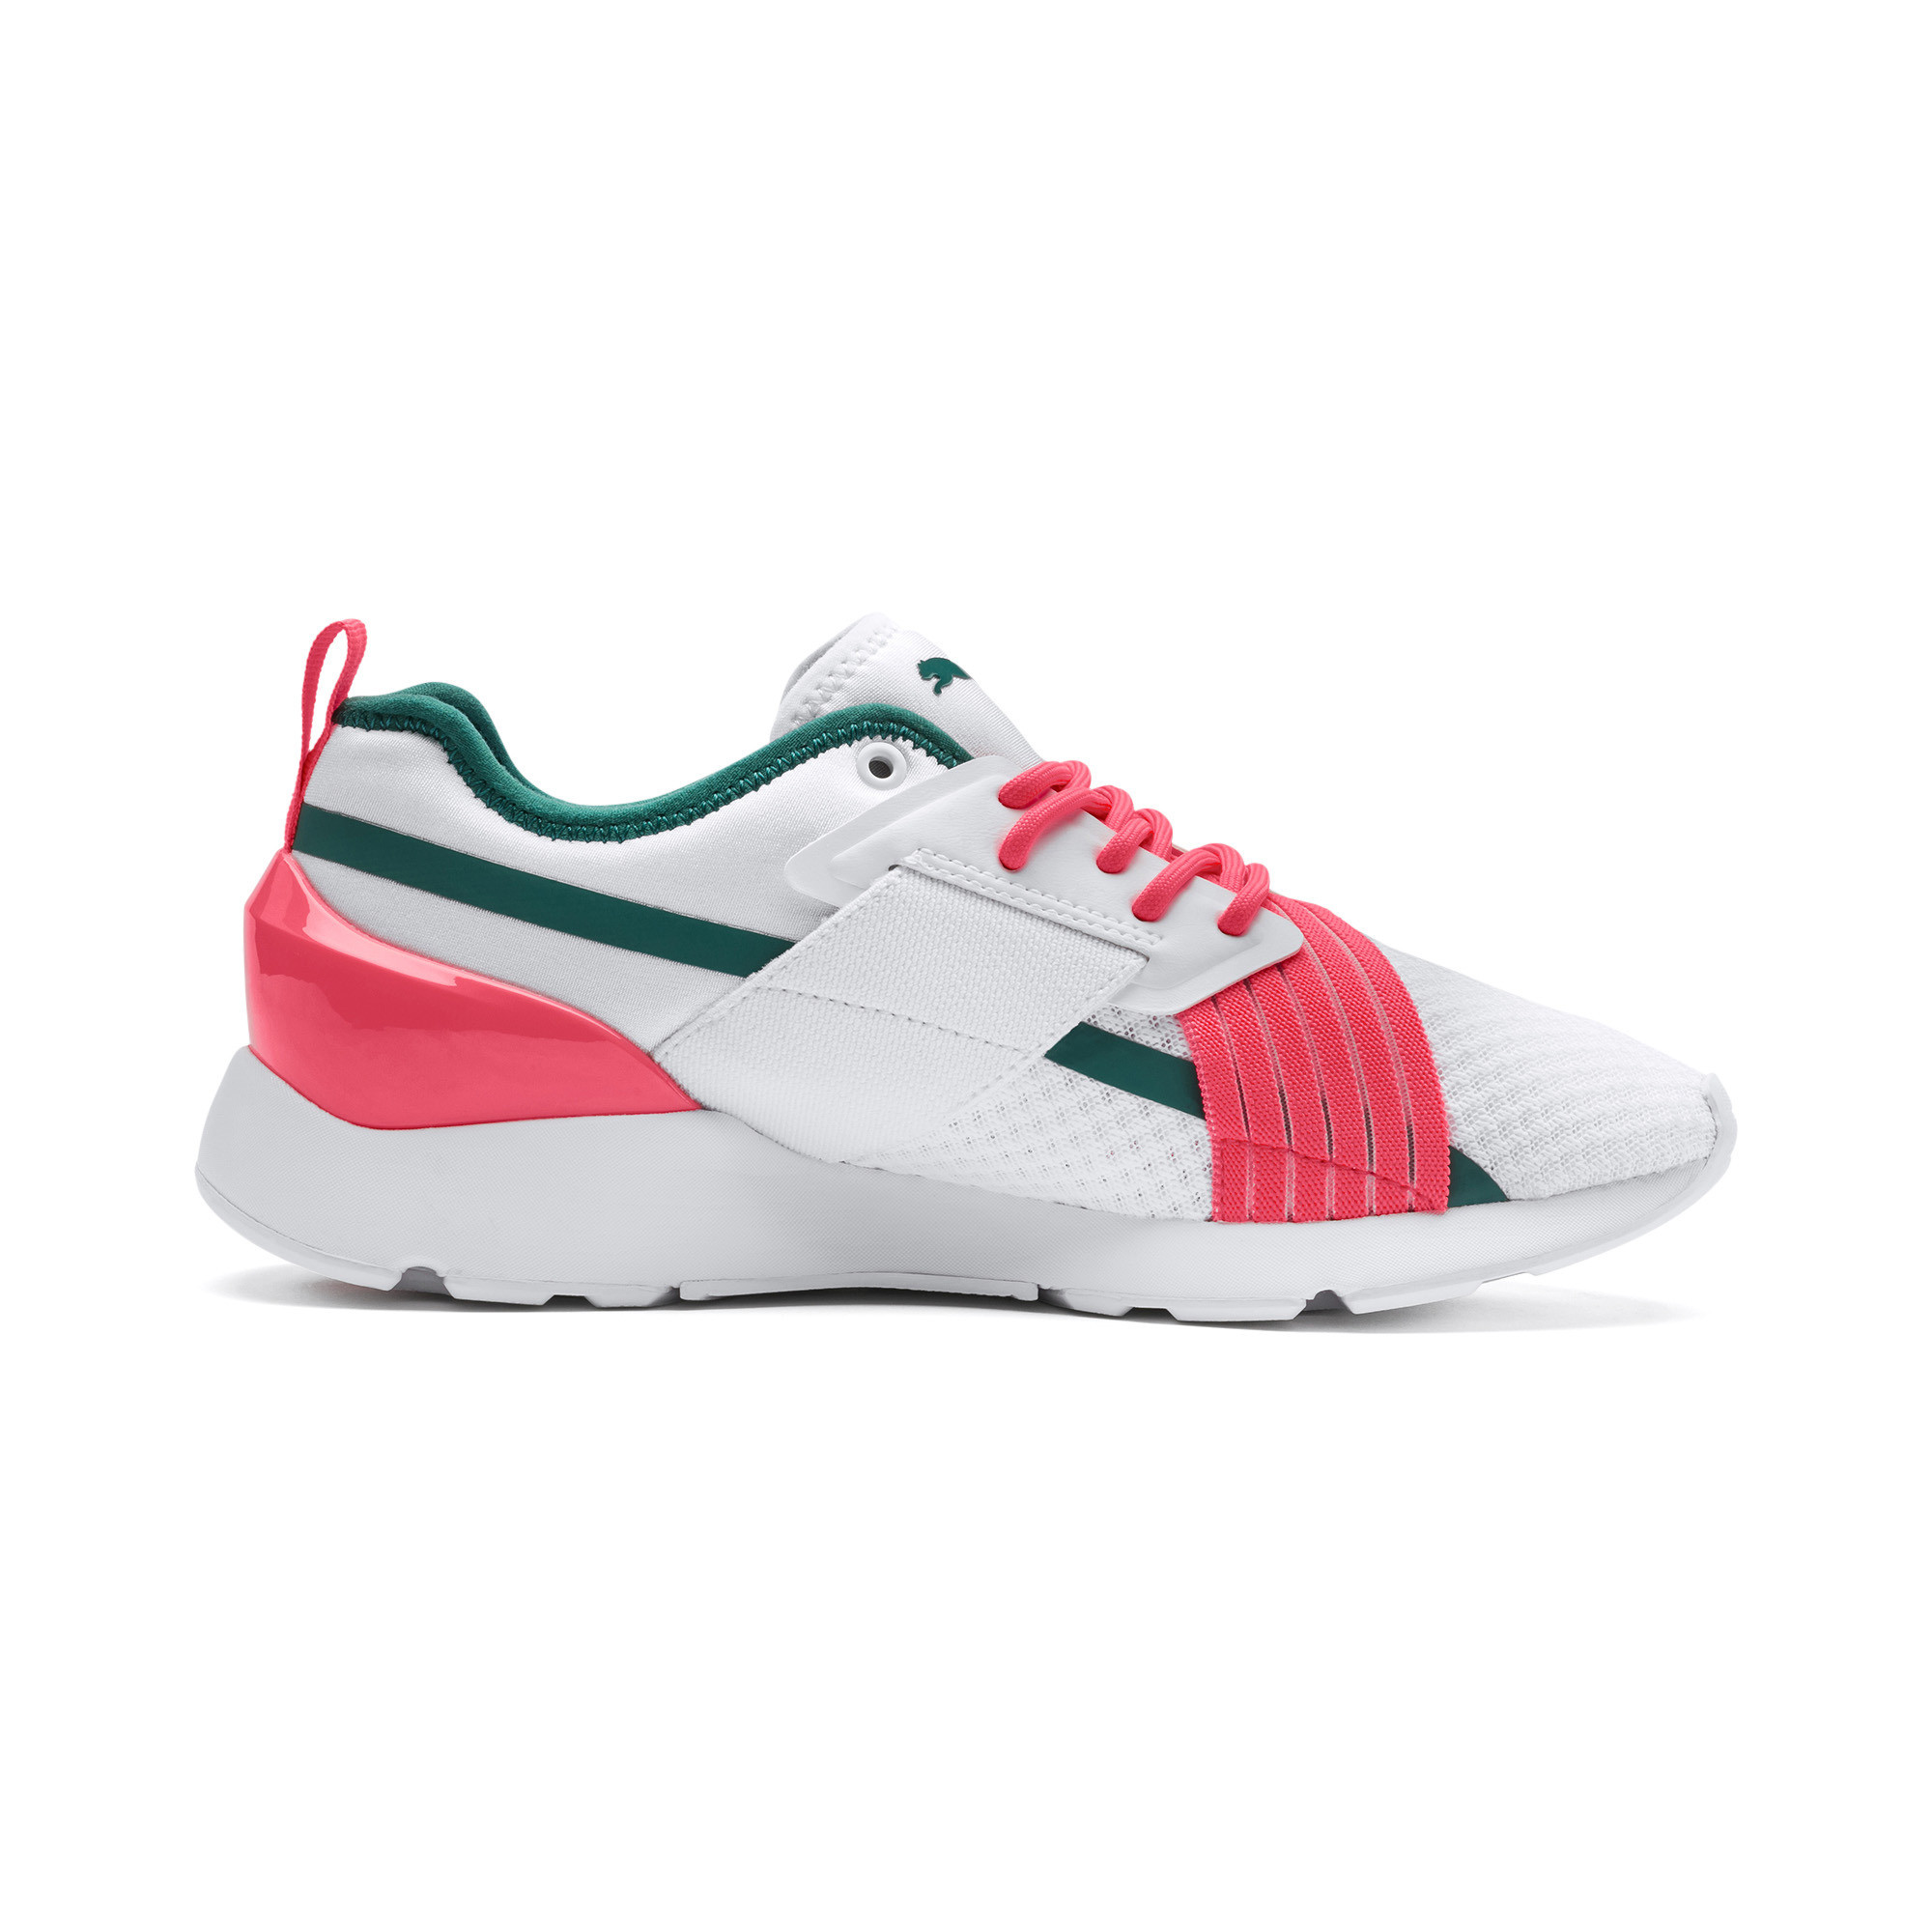 PUMA-Muse-X-2-Women-039-s-Sneakers-Women-Shoe-Evolution thumbnail 7